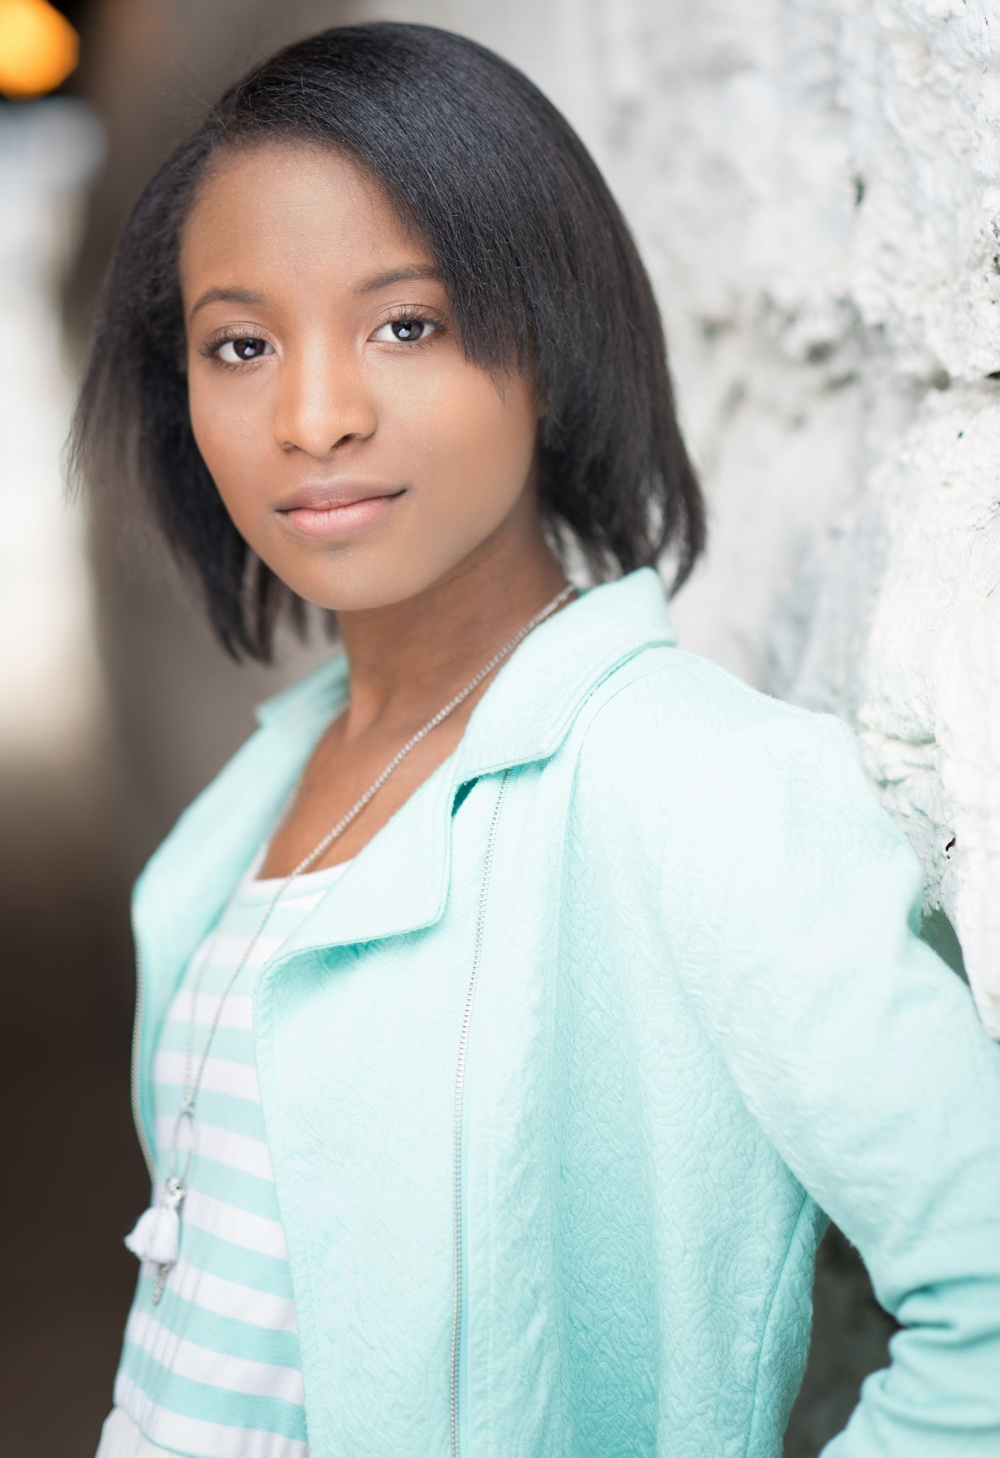 Jaeaunna, a new model in our midst, was recently signed to the Shinabery Modeling Agency!